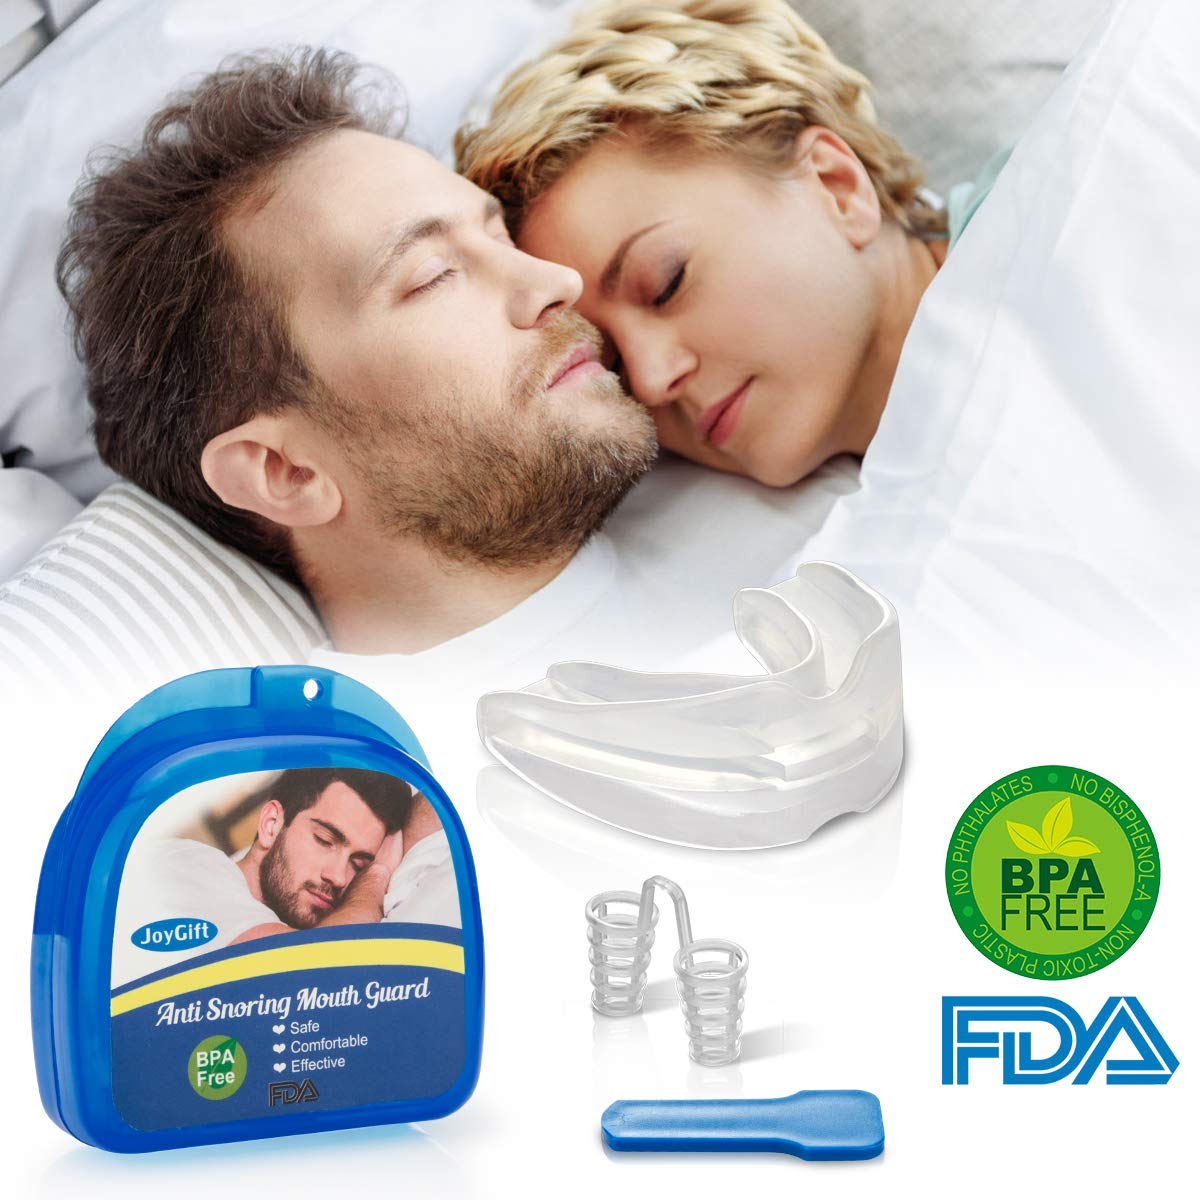 Anti Snoring Mouth Guard, Anti Snoring Devices Snore Solution Anti Snoring Mouthpiece for Sleep Aids Bruxism Snore Reduction Stop Snoring Devices Best Snoring Stopper Snoring Reducing Mouthpiece